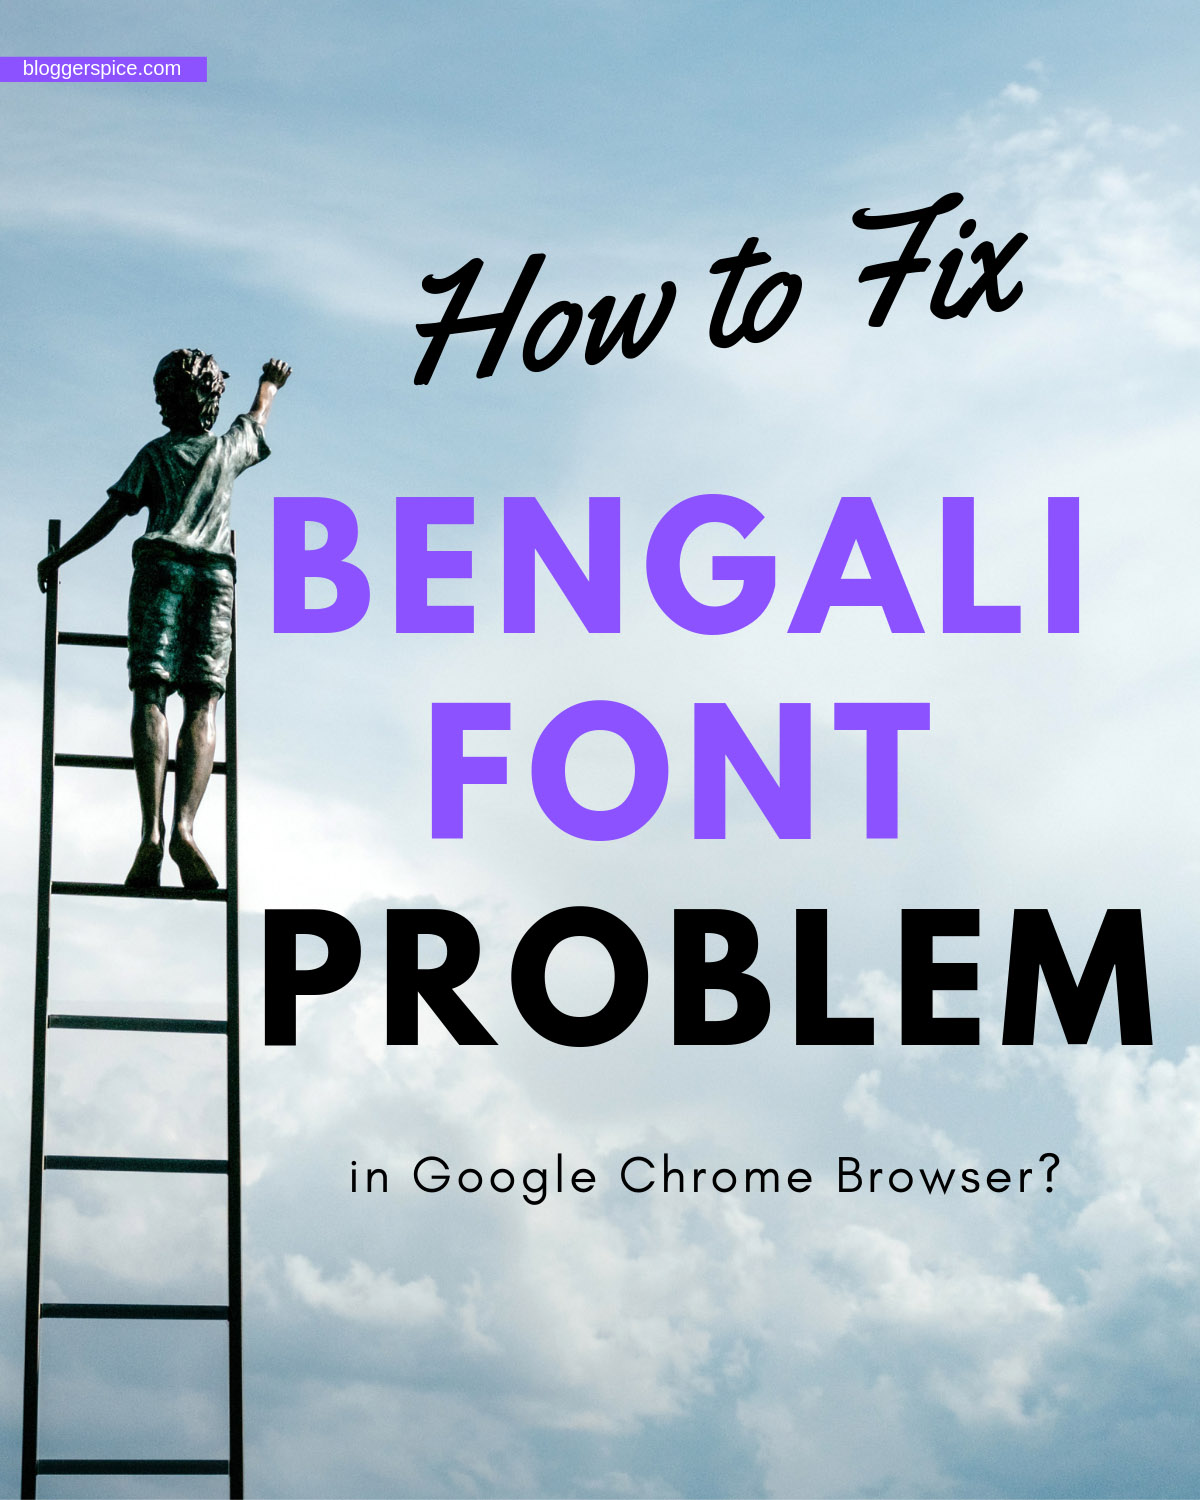 How to fix bangla fonts problem in firefox?